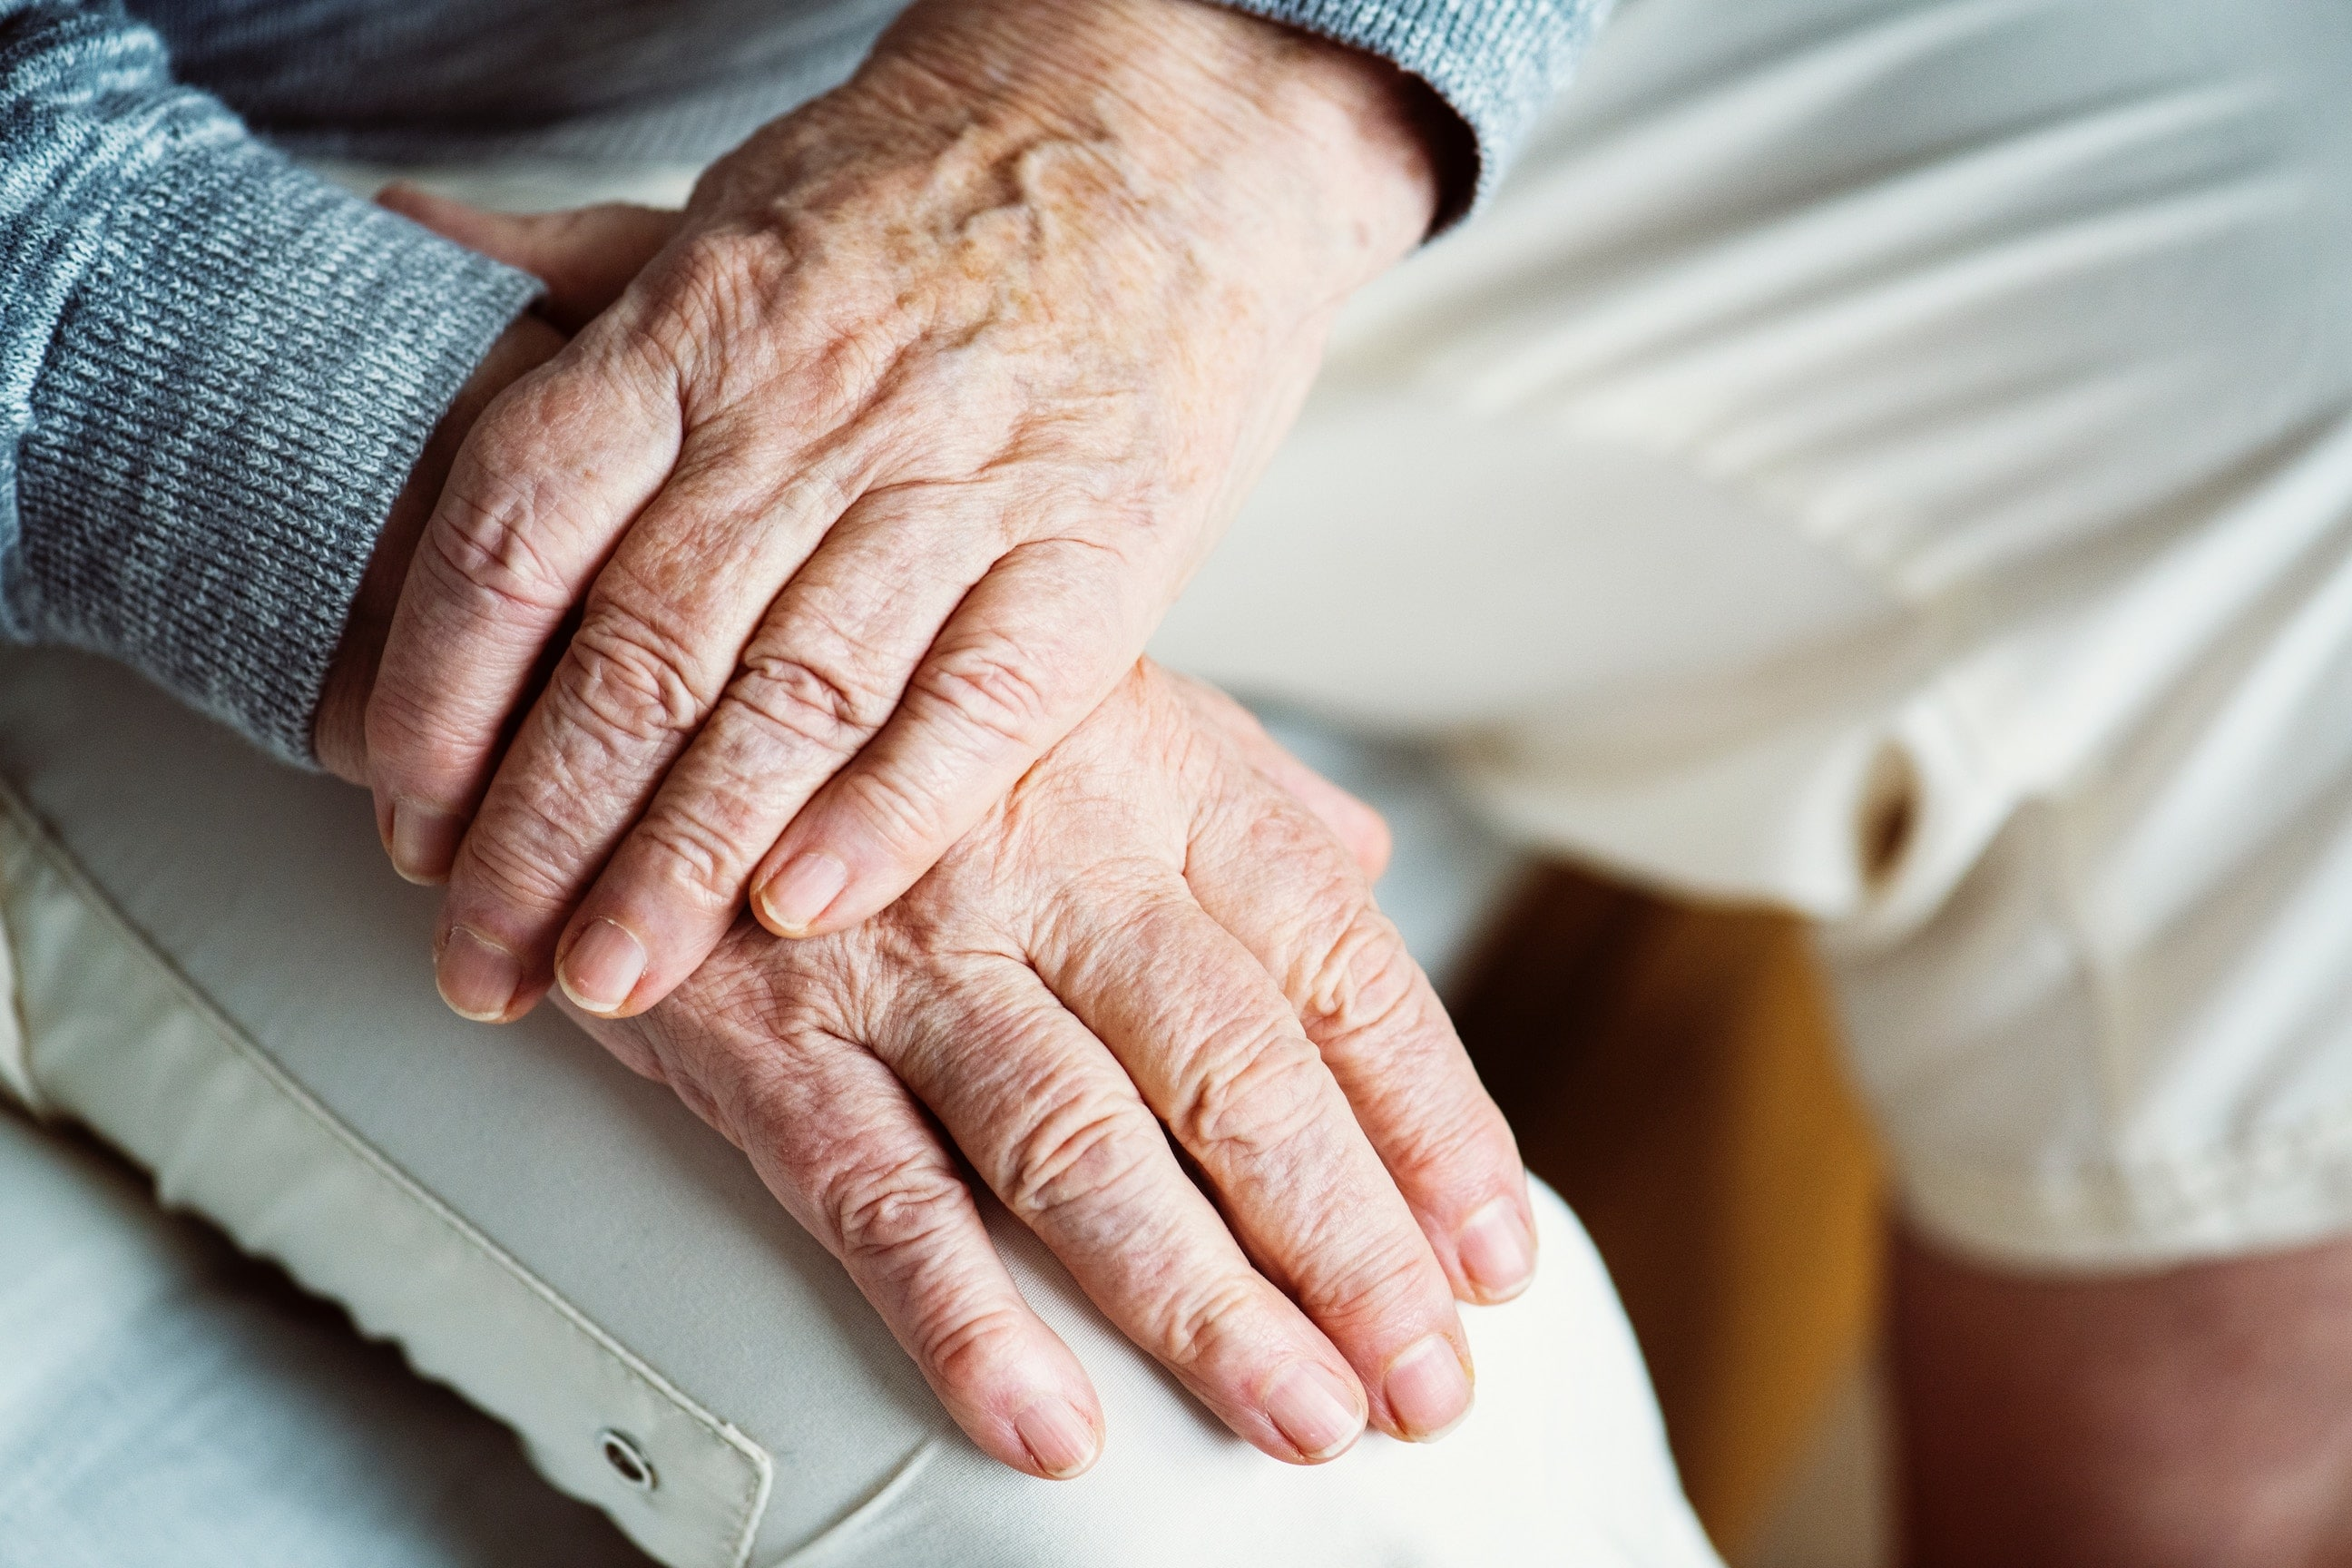 Caretakers of the elderly - person placing hands on thigh